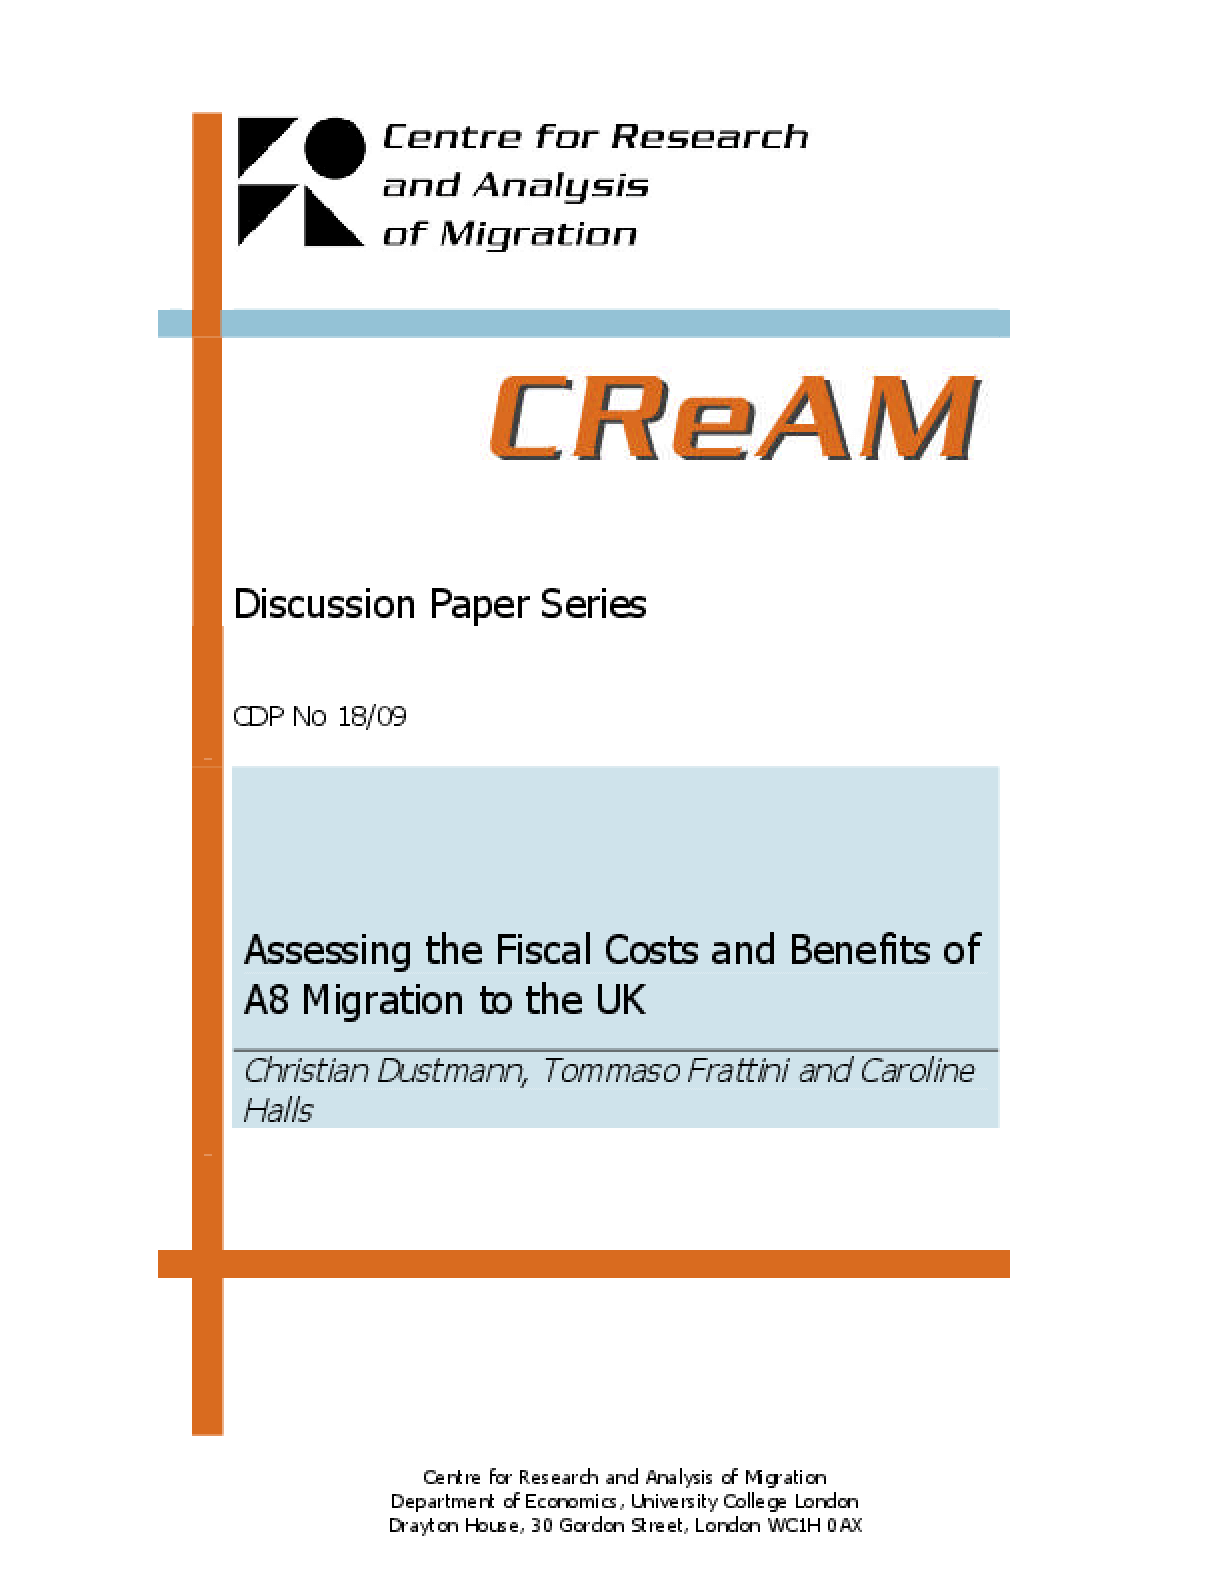 Assessing the Fiscal Costs and Benefits of A8 Migration to the UK